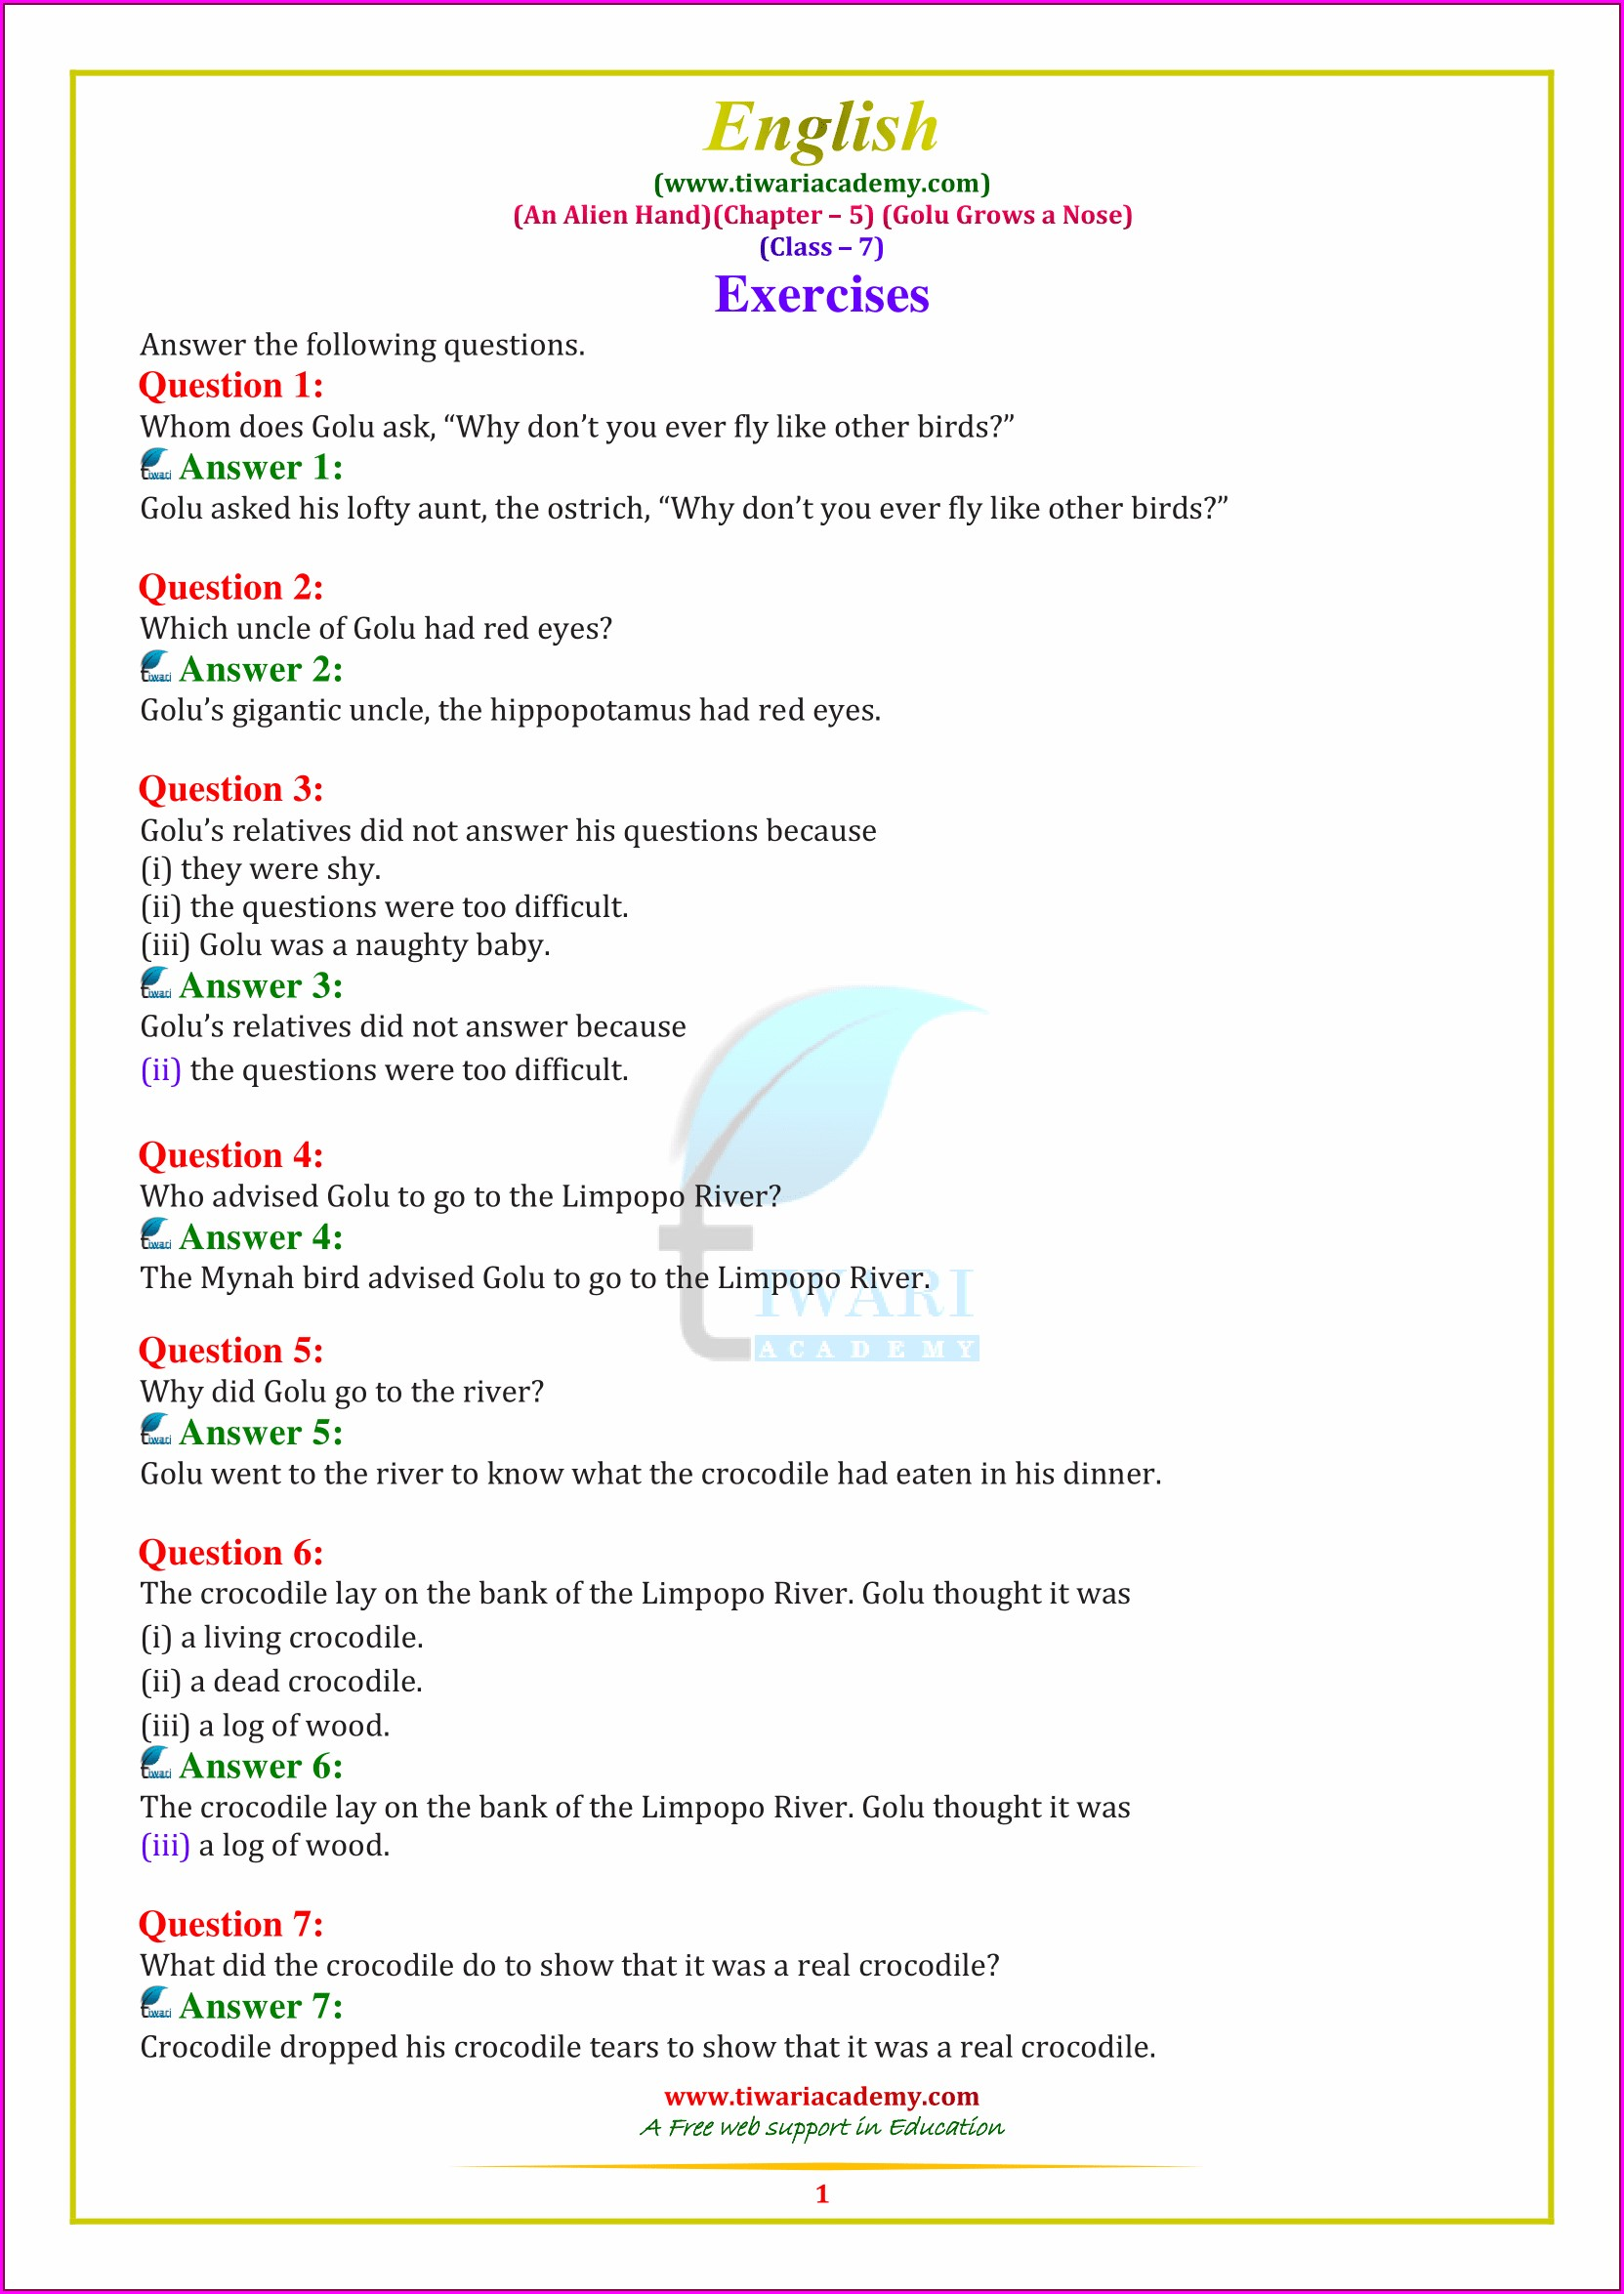 Grade 7 English Grammar Worksheets For Class 7 Cbse With Answers Pdf